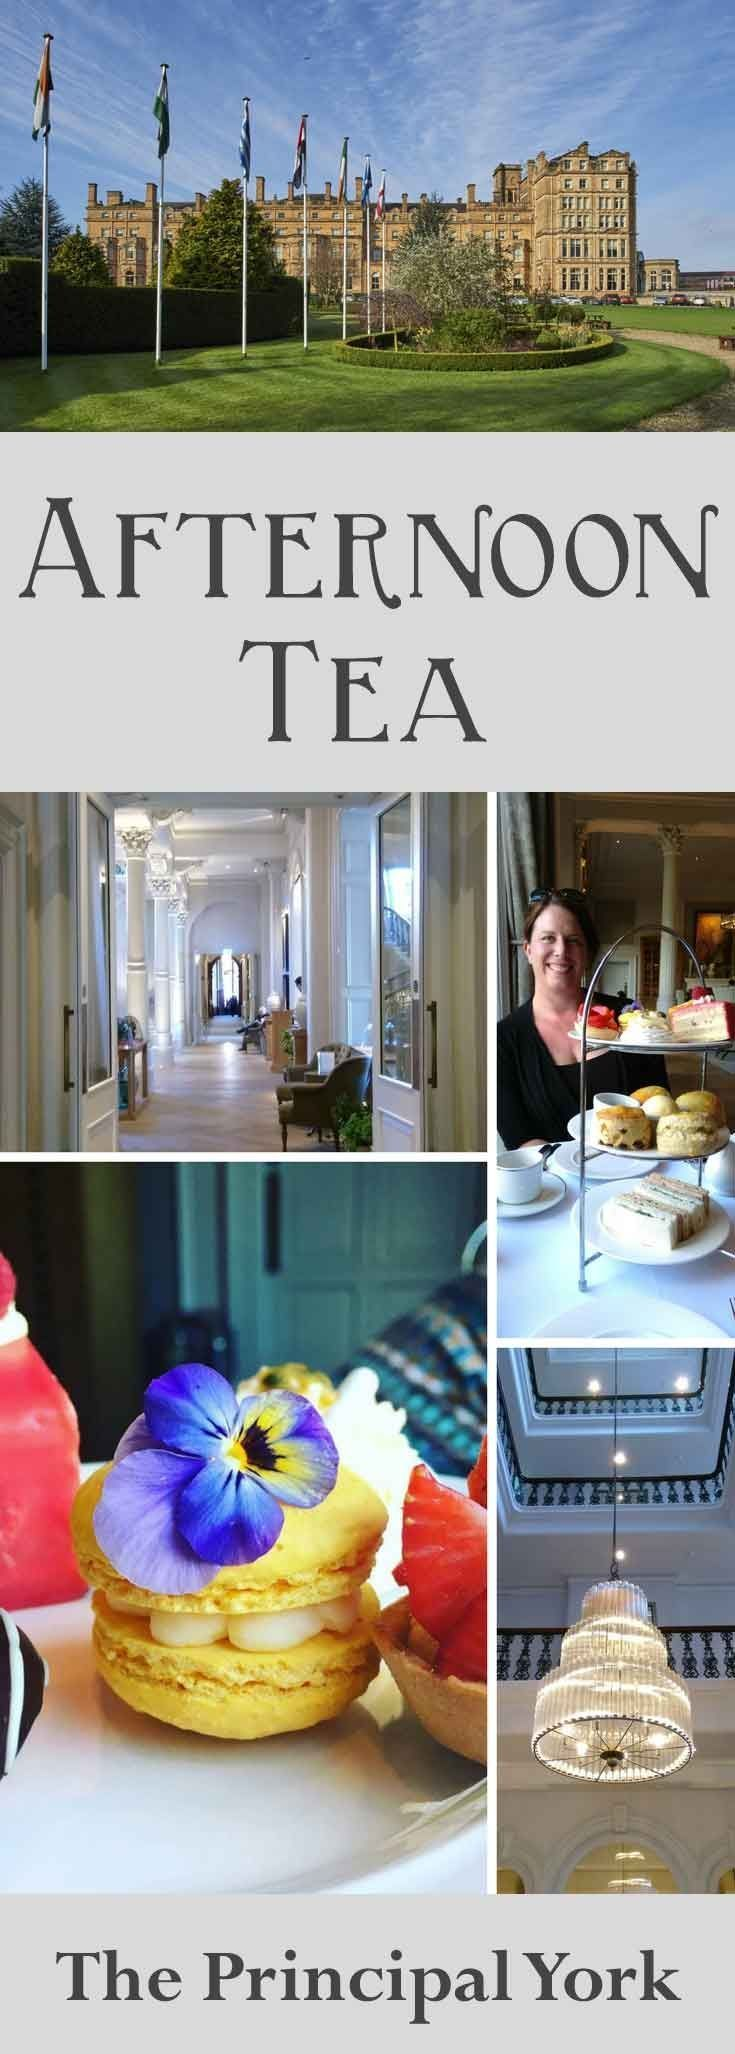 Looking for a decadent Afternoon Tea? York has lots to offer! Have a look at my review of the Principal York Hotel (Formerly The Royal York Hotel).  From salmon or cucumber sandwiches, to cake, macarons, tartlets and scones with jam and clotted cream.  Breakfast, Earl Grey, Ceylon, Lady Grey Teas.